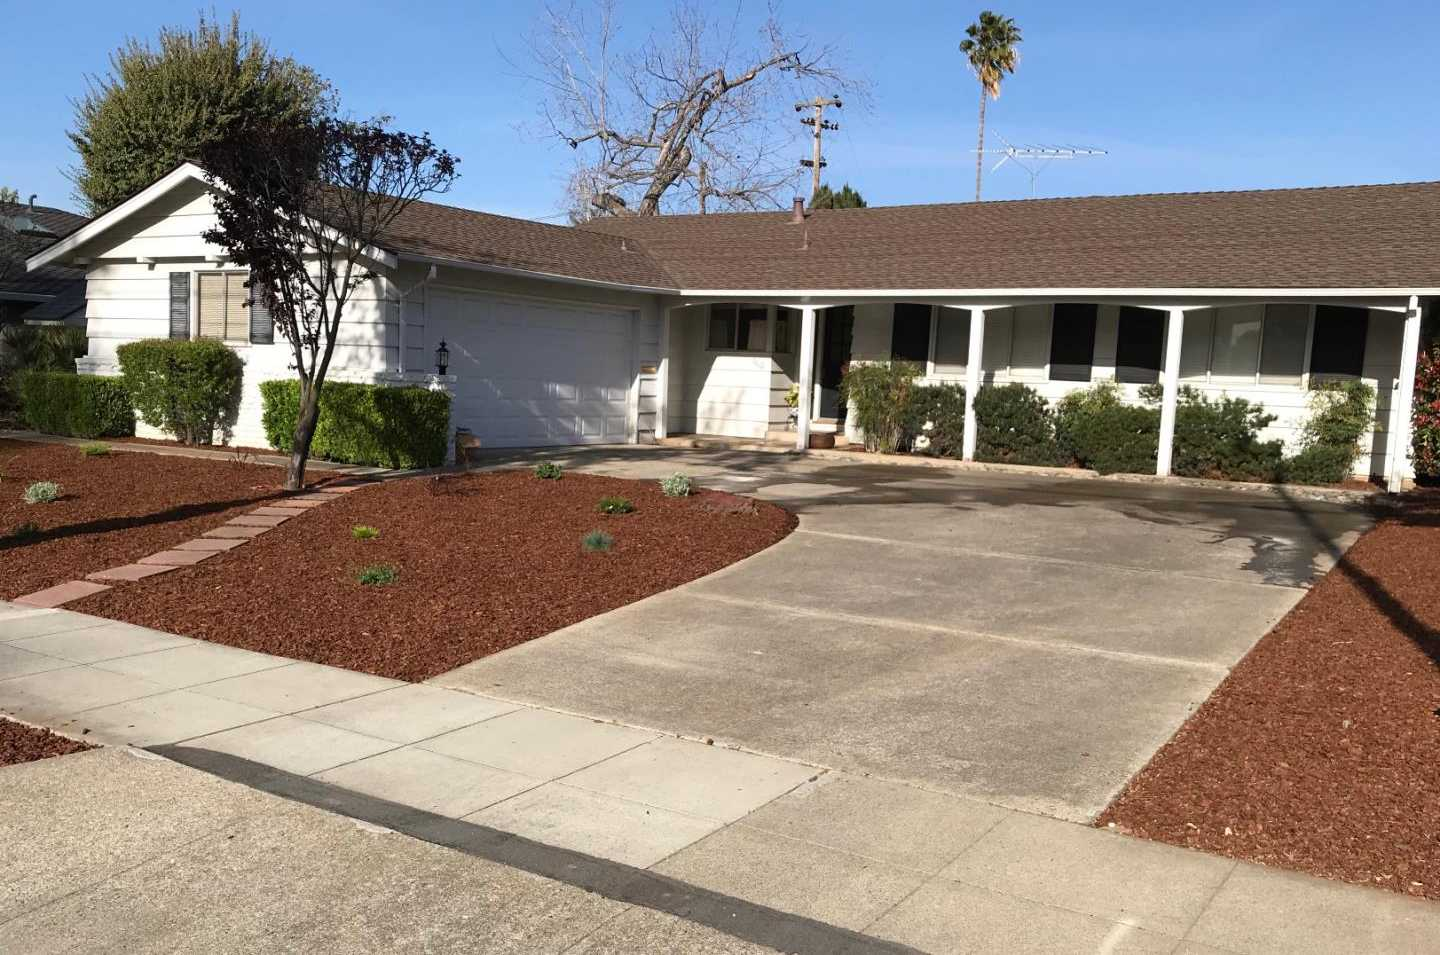 $2,175,000 - 4Br/2Ba -  for Sale in Sunnyvale